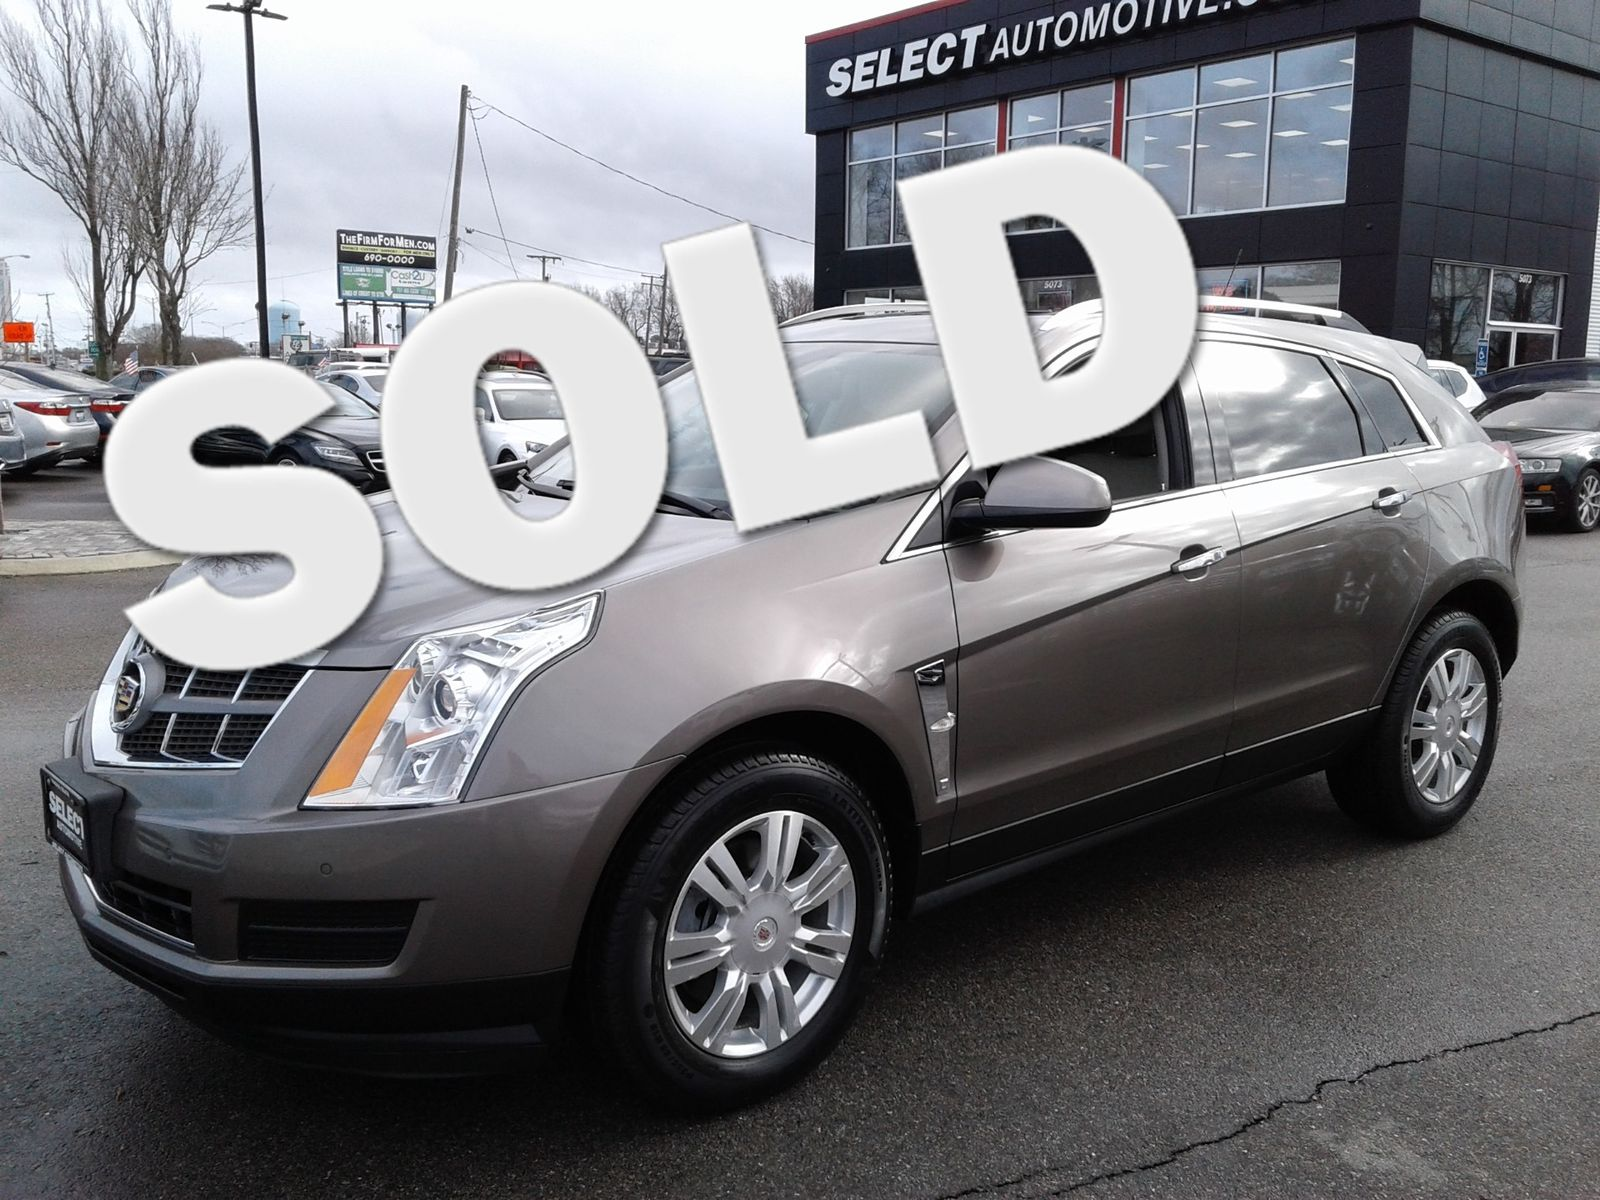 click for collection suv full performance to size used photo sale cadillac srx see buford ga fwd